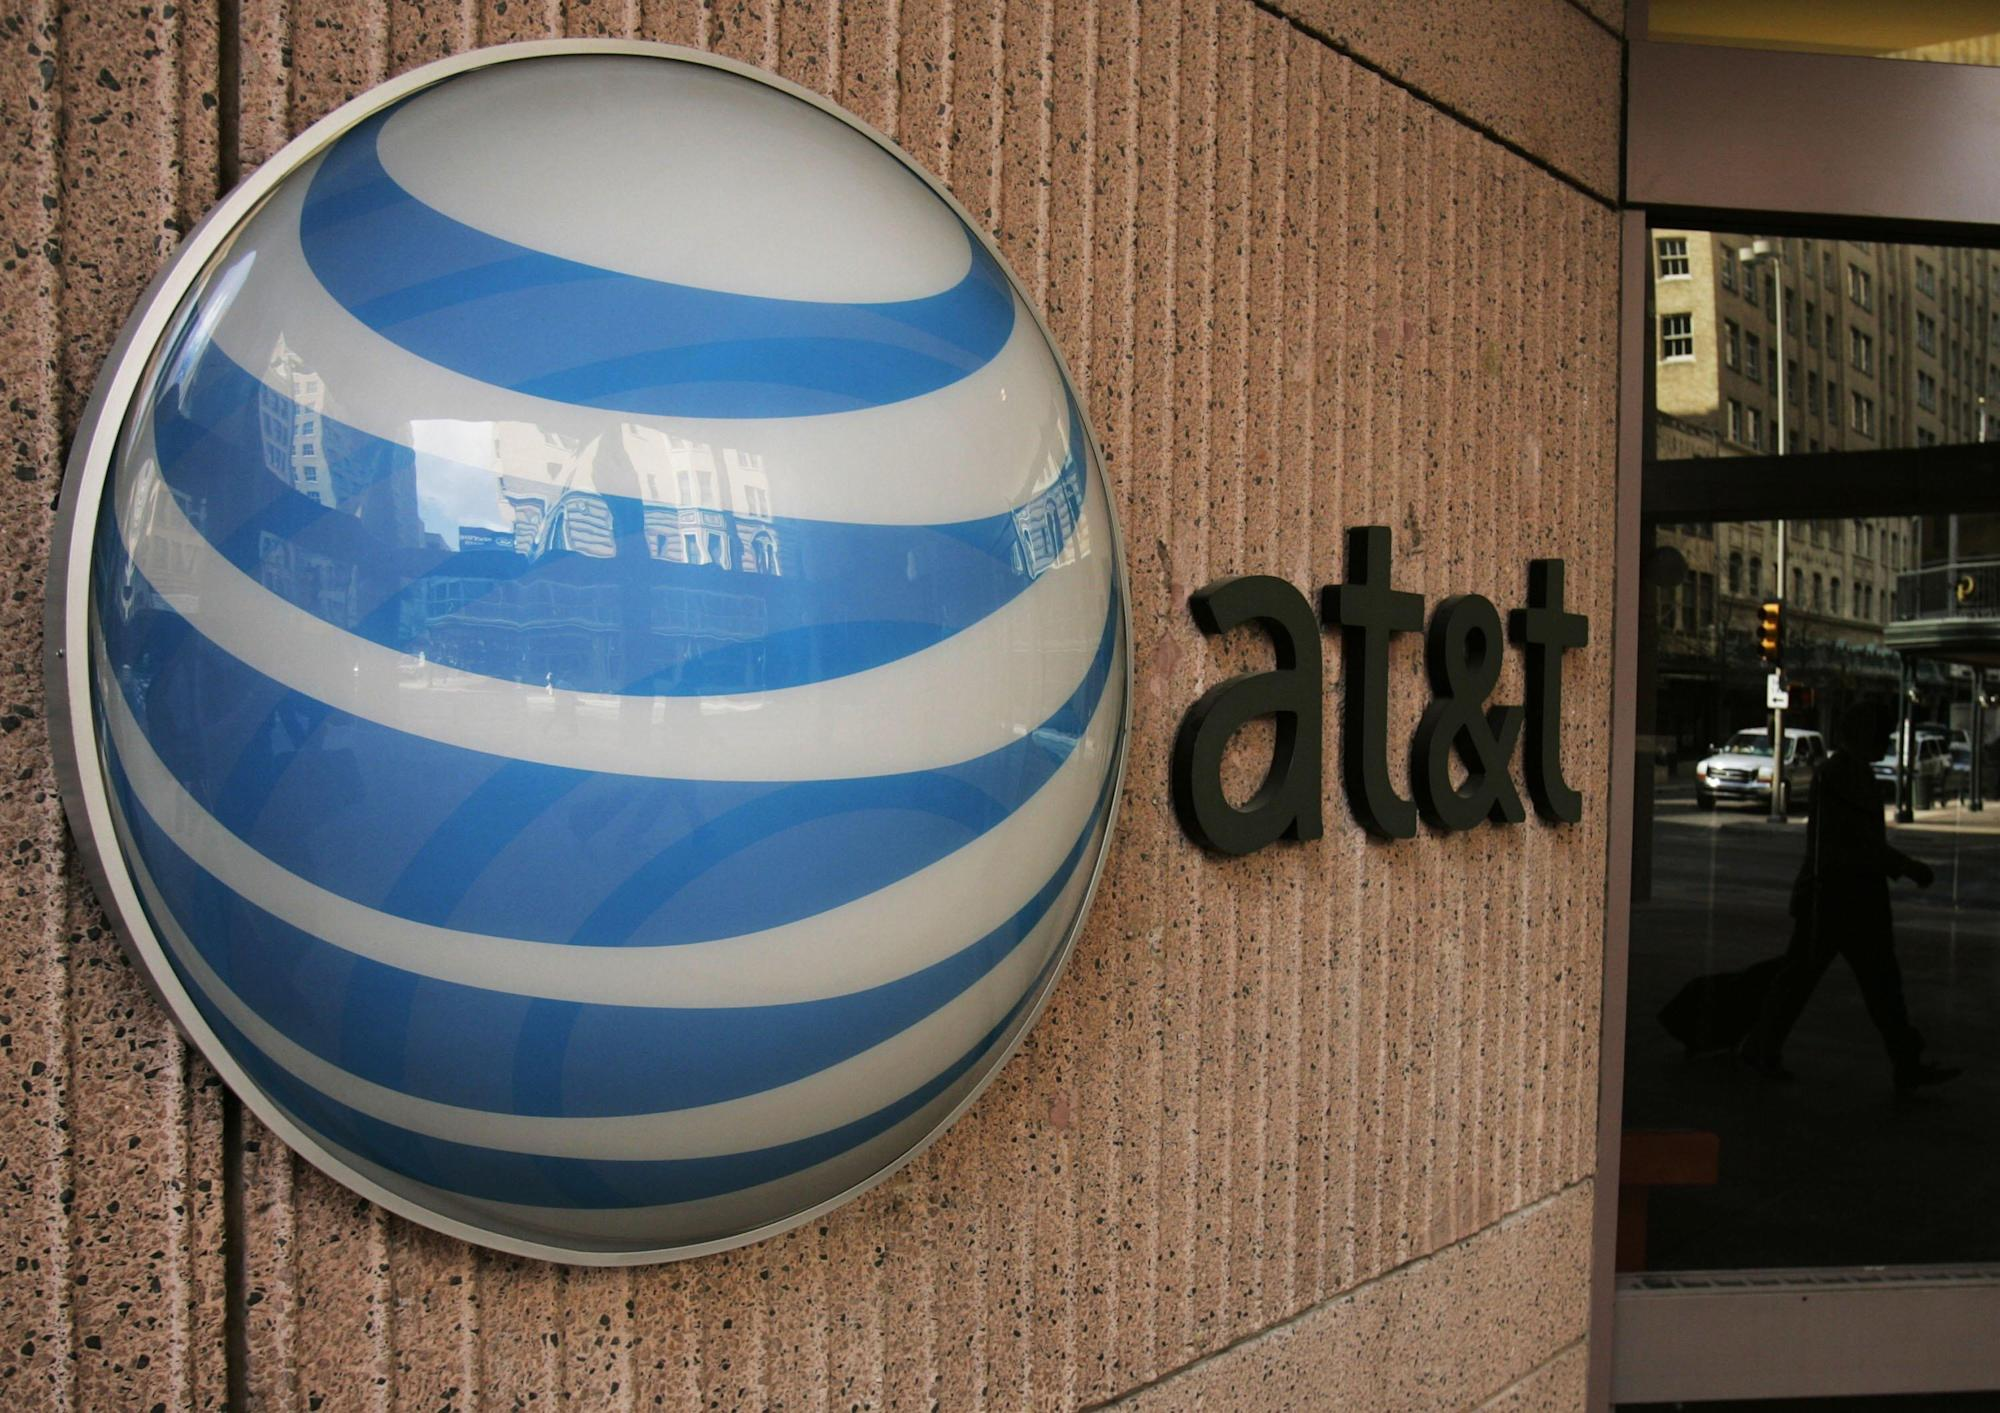 AT&T is turning DirecTV into a standalone company